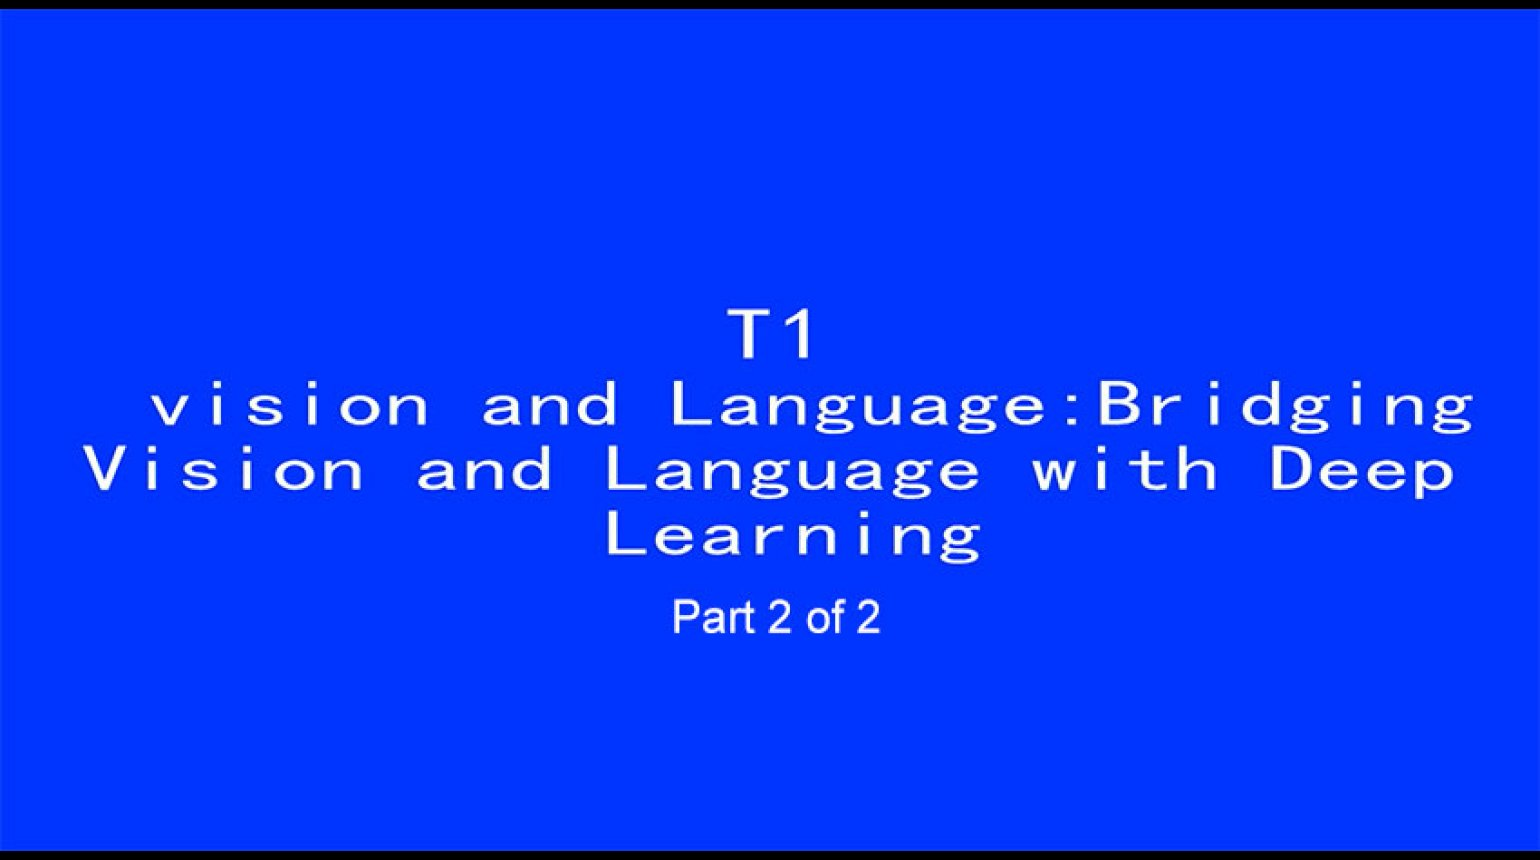 ICIP 2017 Tutorial - Vision and Language: Bridging Vision